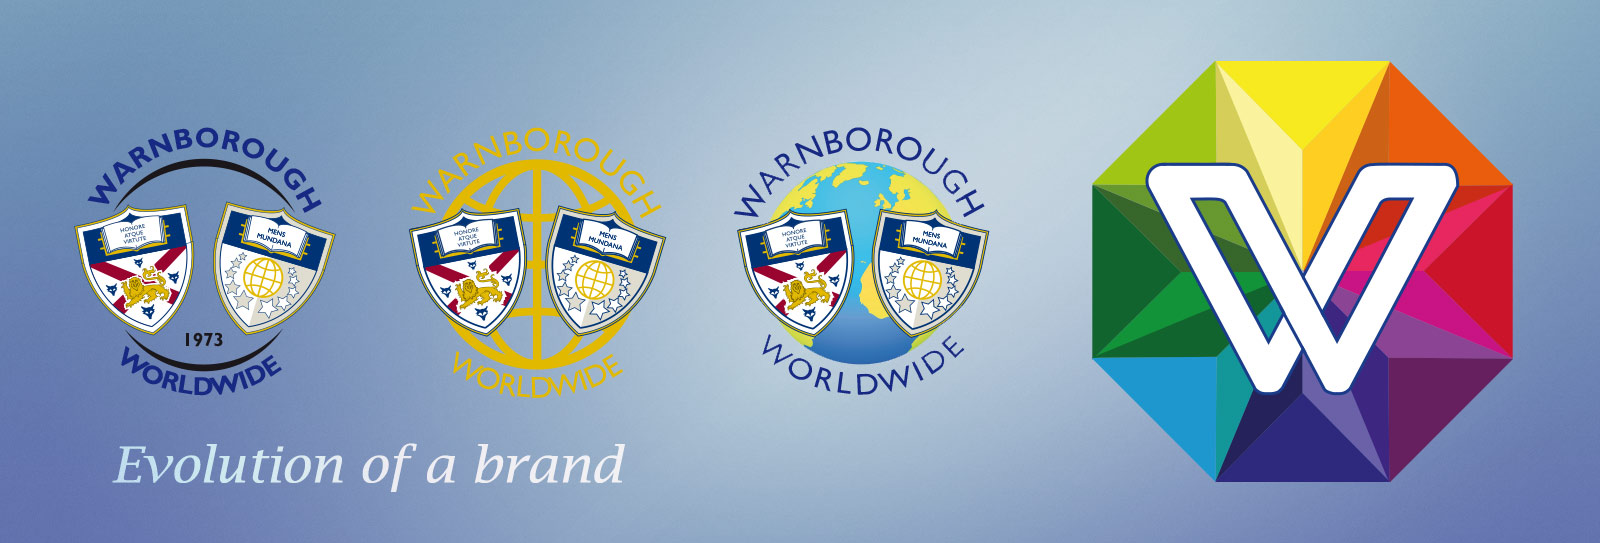 Warnborough Worldwide logo explanation